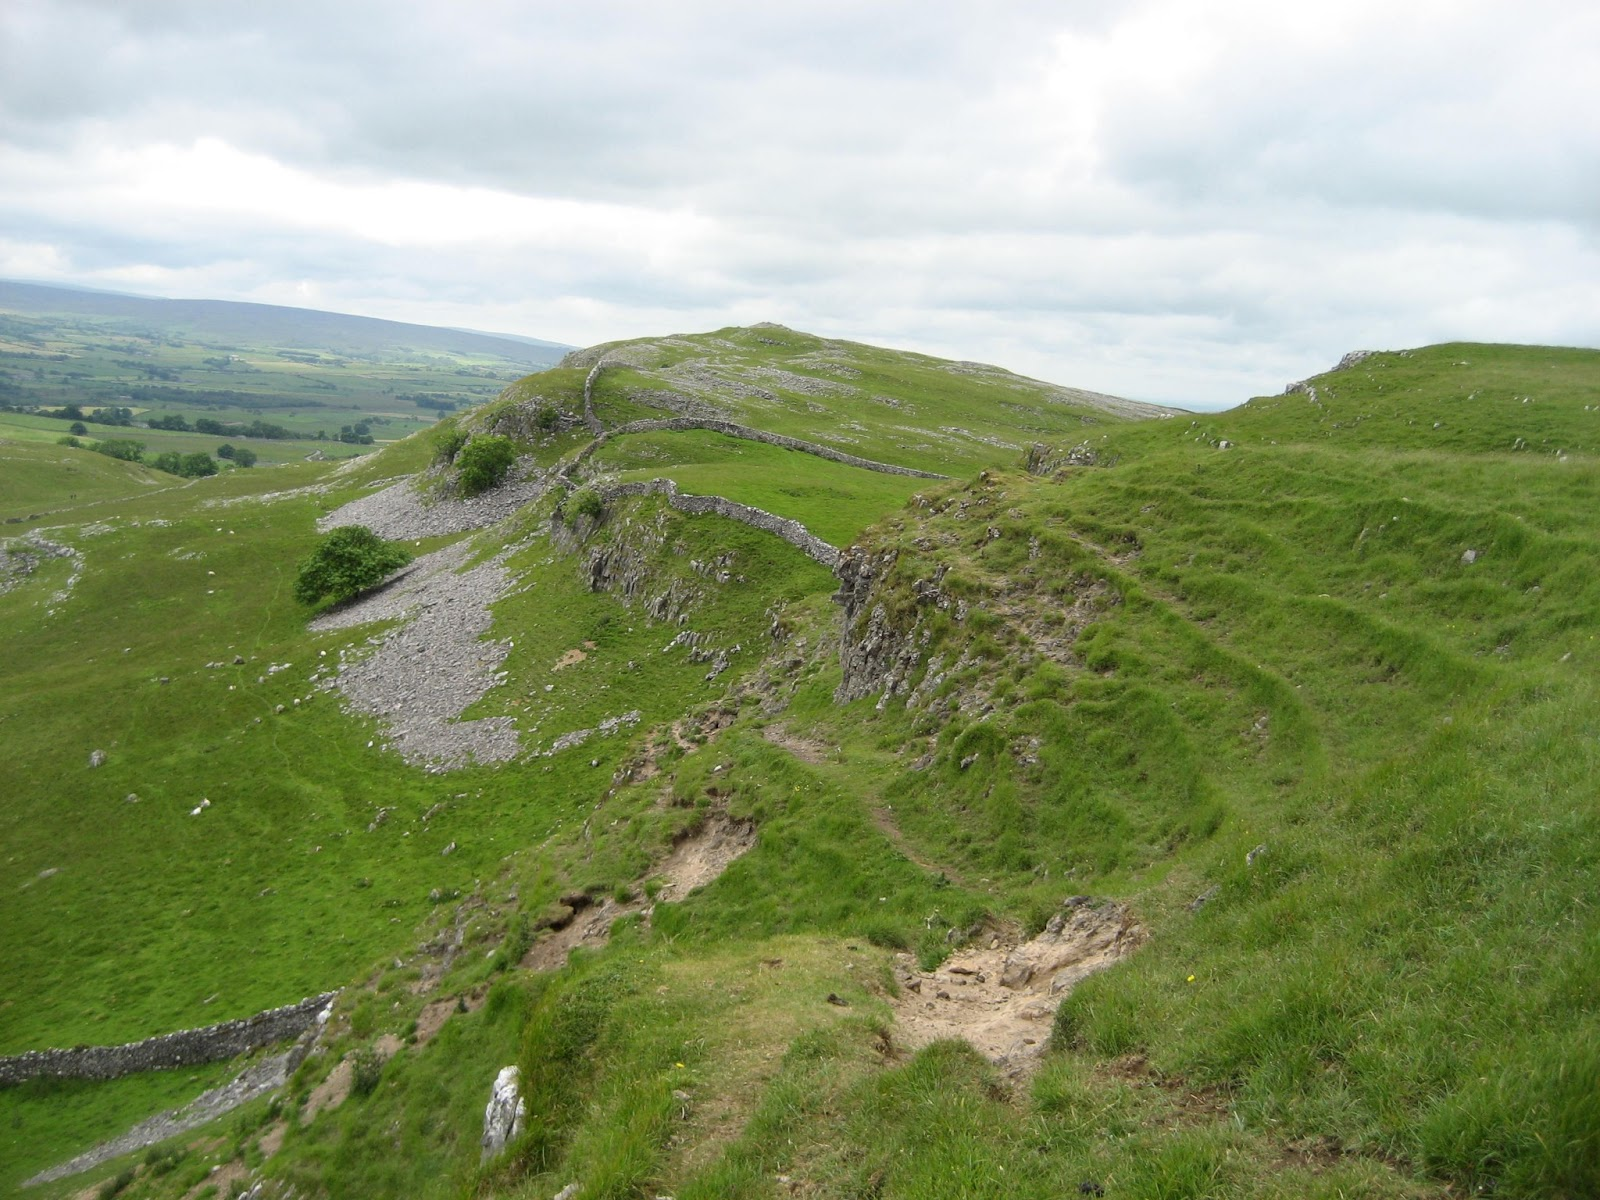 Looking along the line of the Feizor Fault: Great Scar Limestones marking the scarp, with Yoredale Limestones downfaulted to the left. Stephen Oldfield.